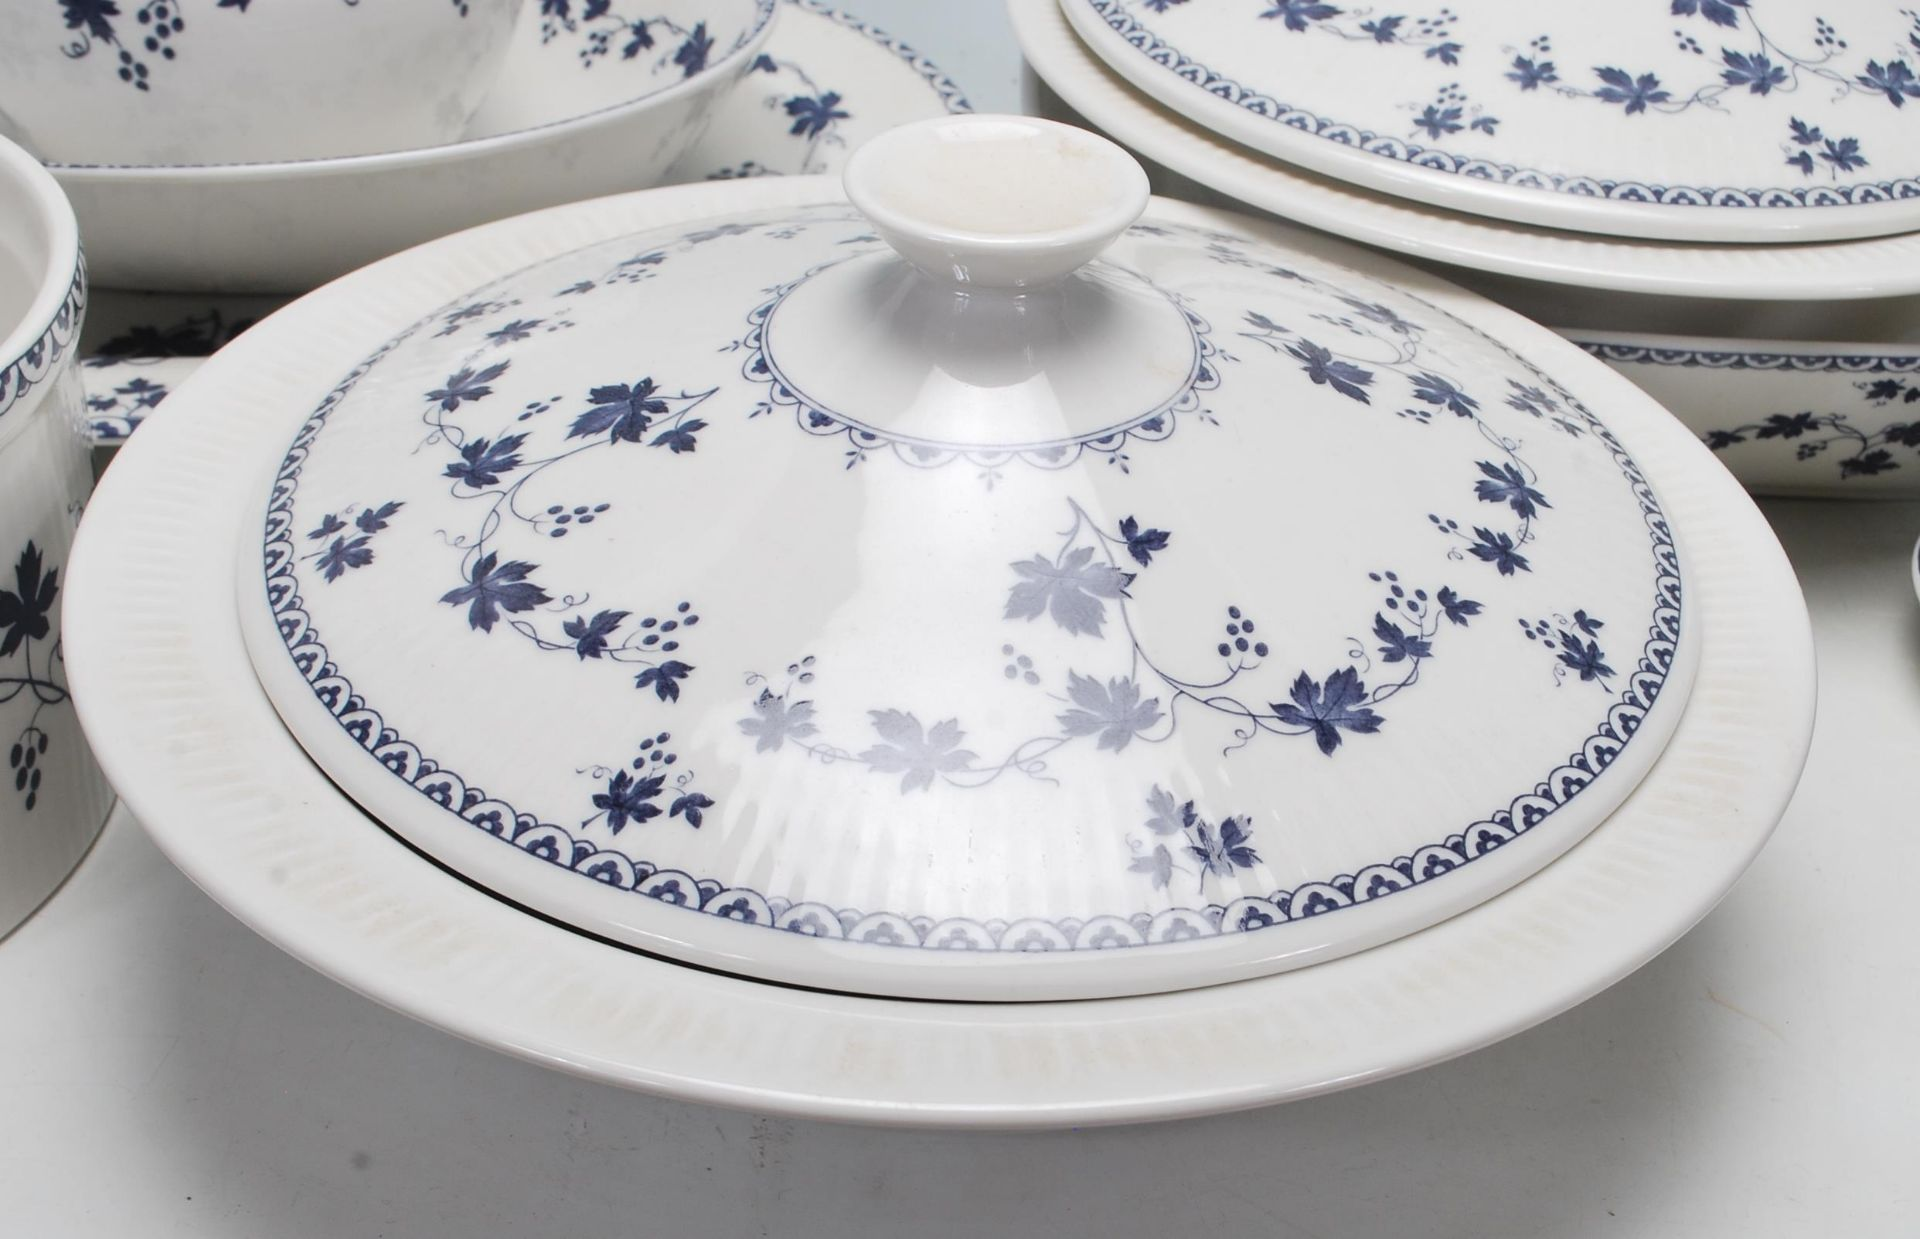 Los 5 - Royal Doulton - Yorktown - A large fine bone china dinner service decorated with blue floral